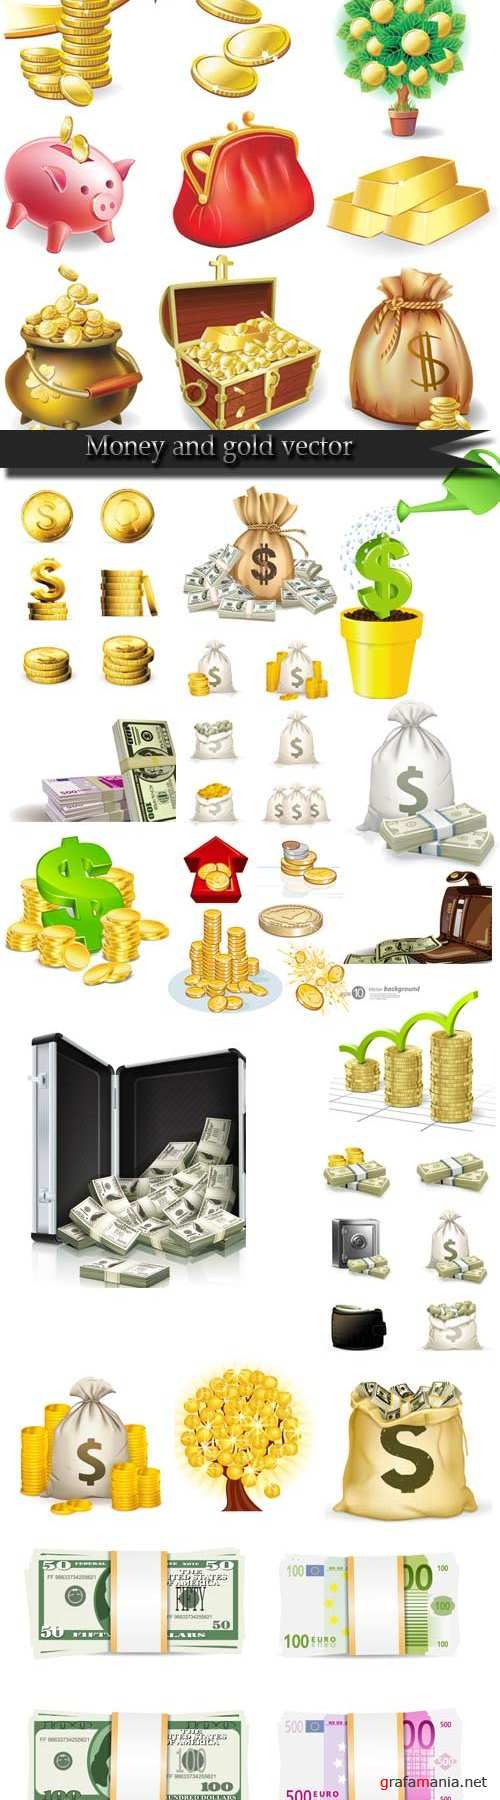 Money and gold vector